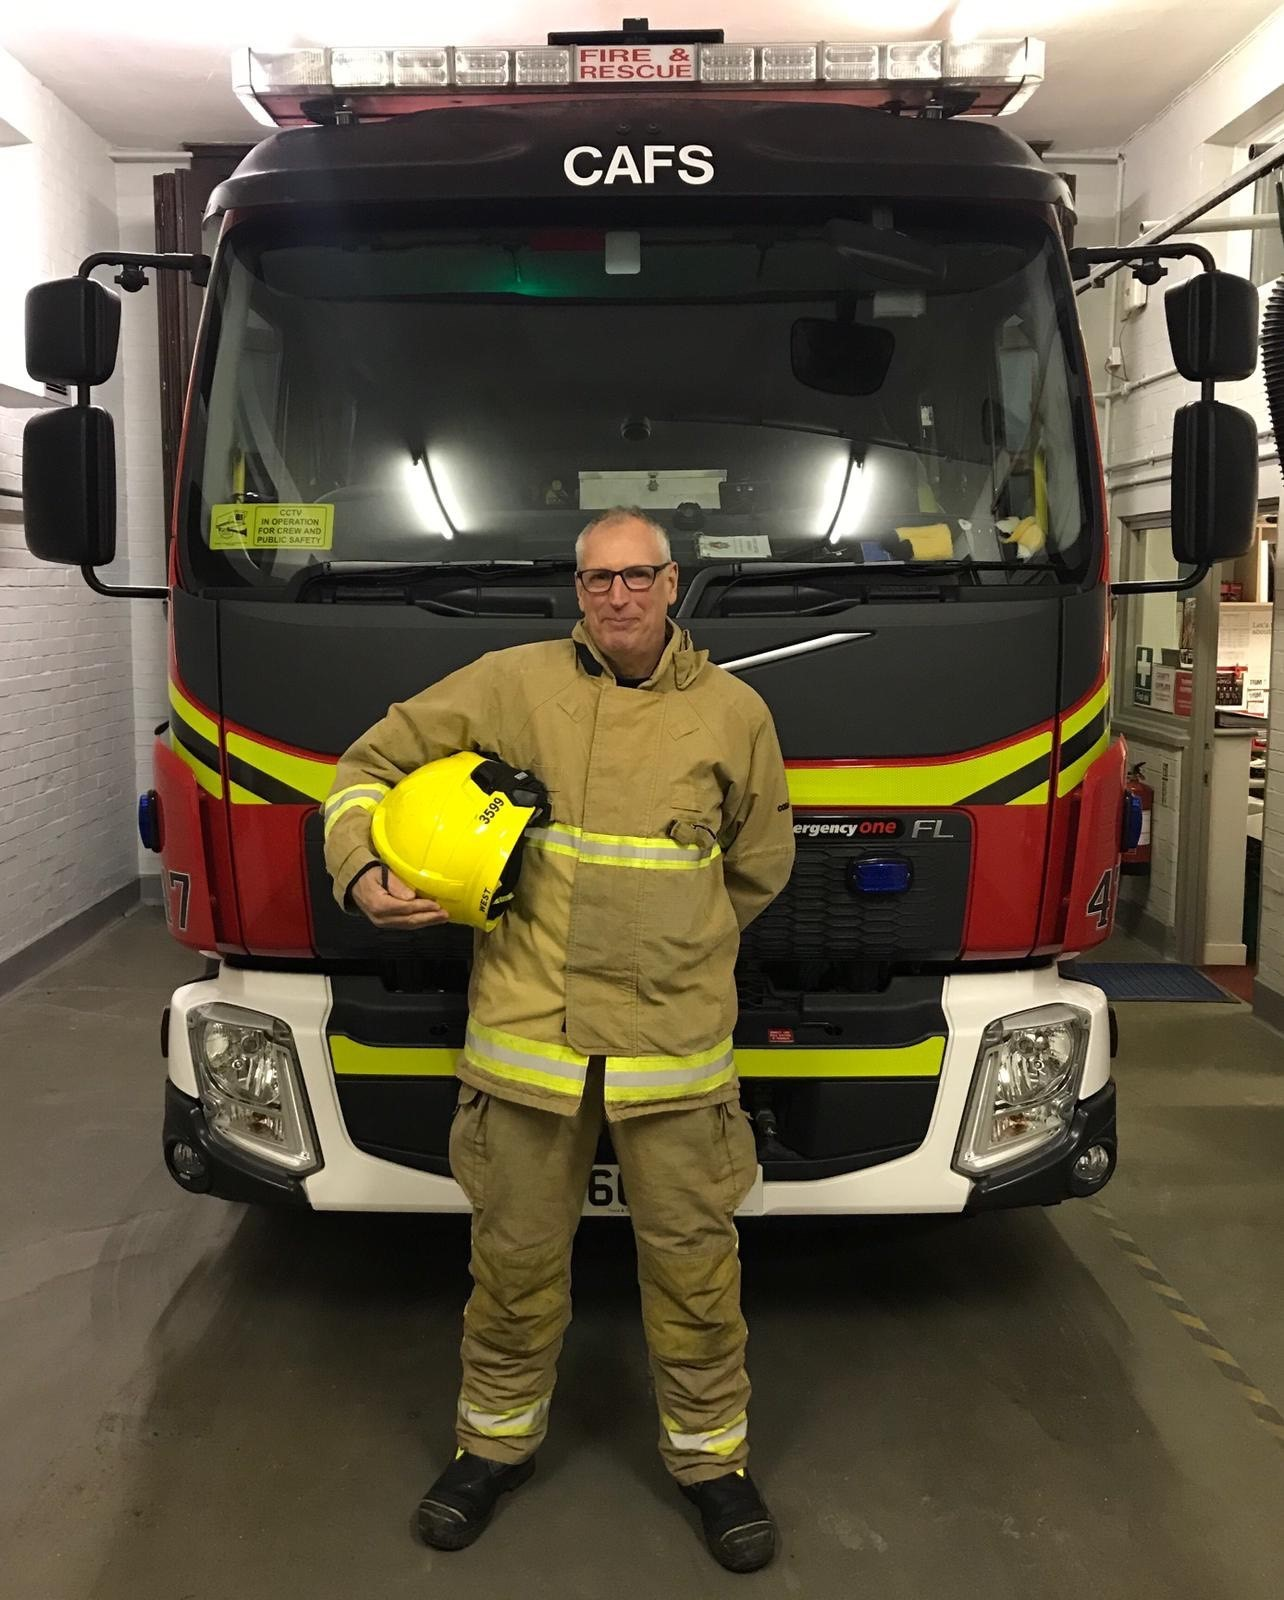 On-call firefighter Mark West has retired after 37 years of service at Fordingbridge Fire Station